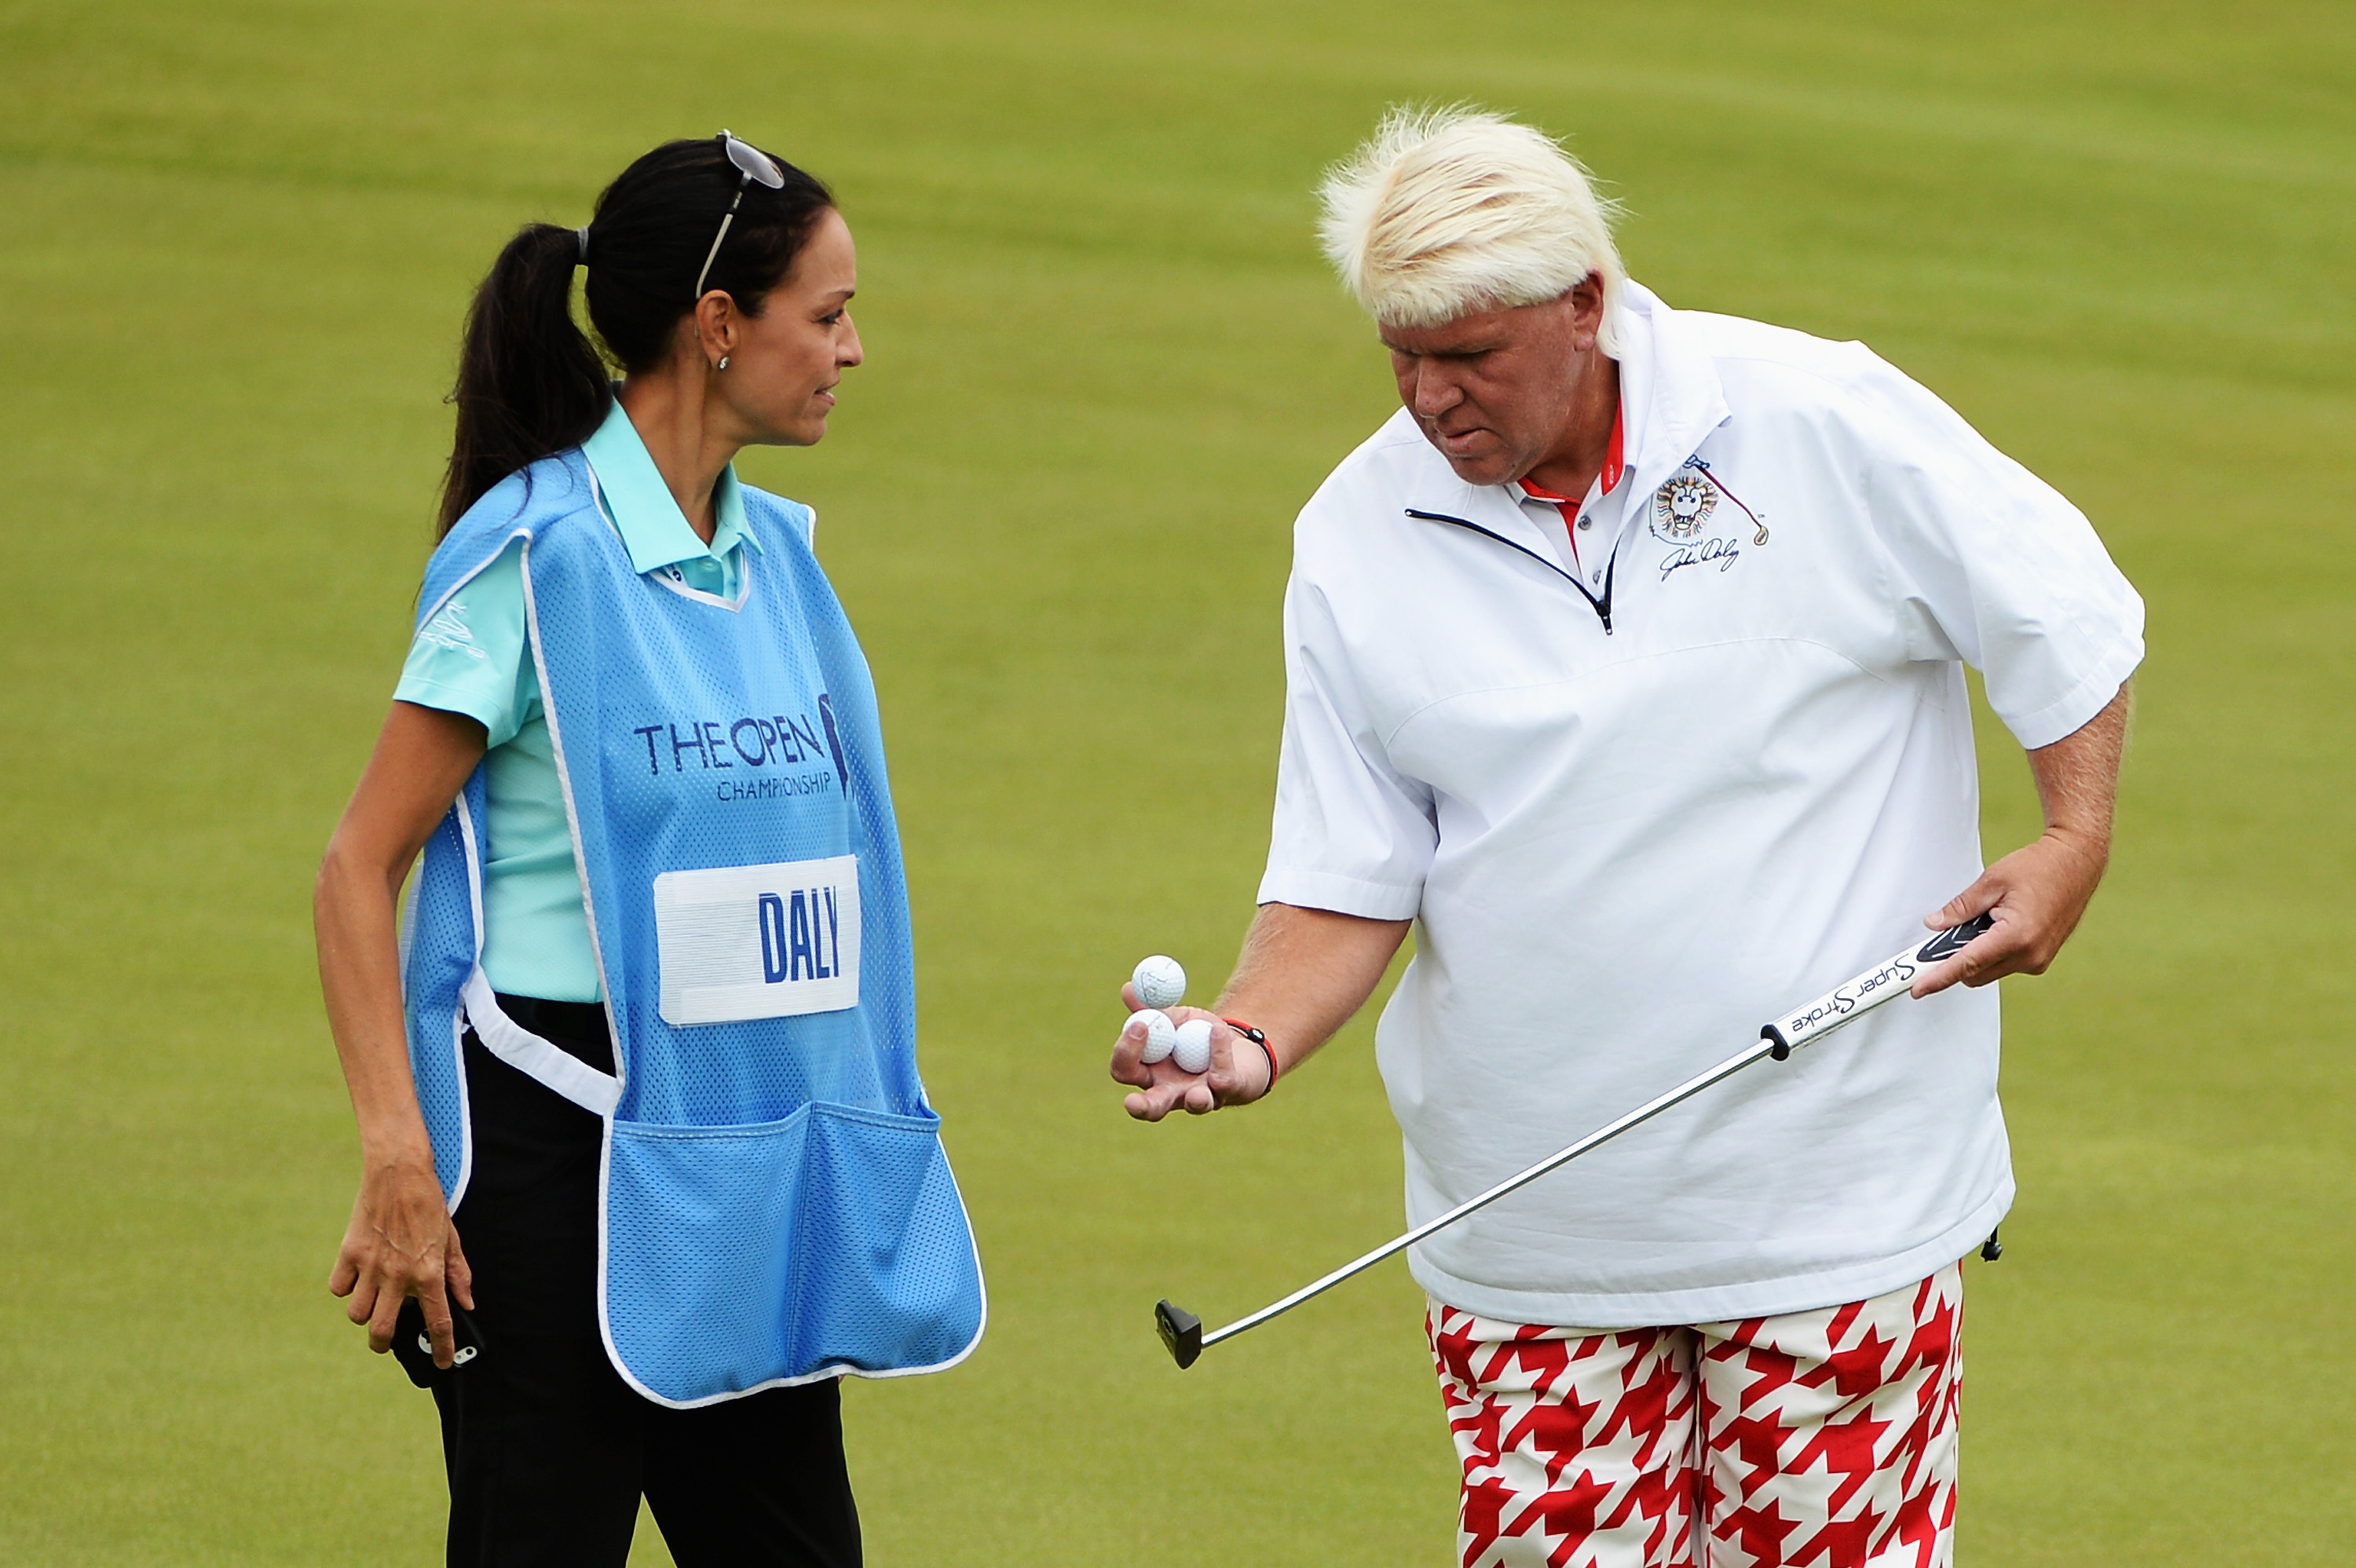 John Daly talks with Anna Cladakis, his girlfriend at the time, during a practice round prior to the start of the 2014 Open Championship.